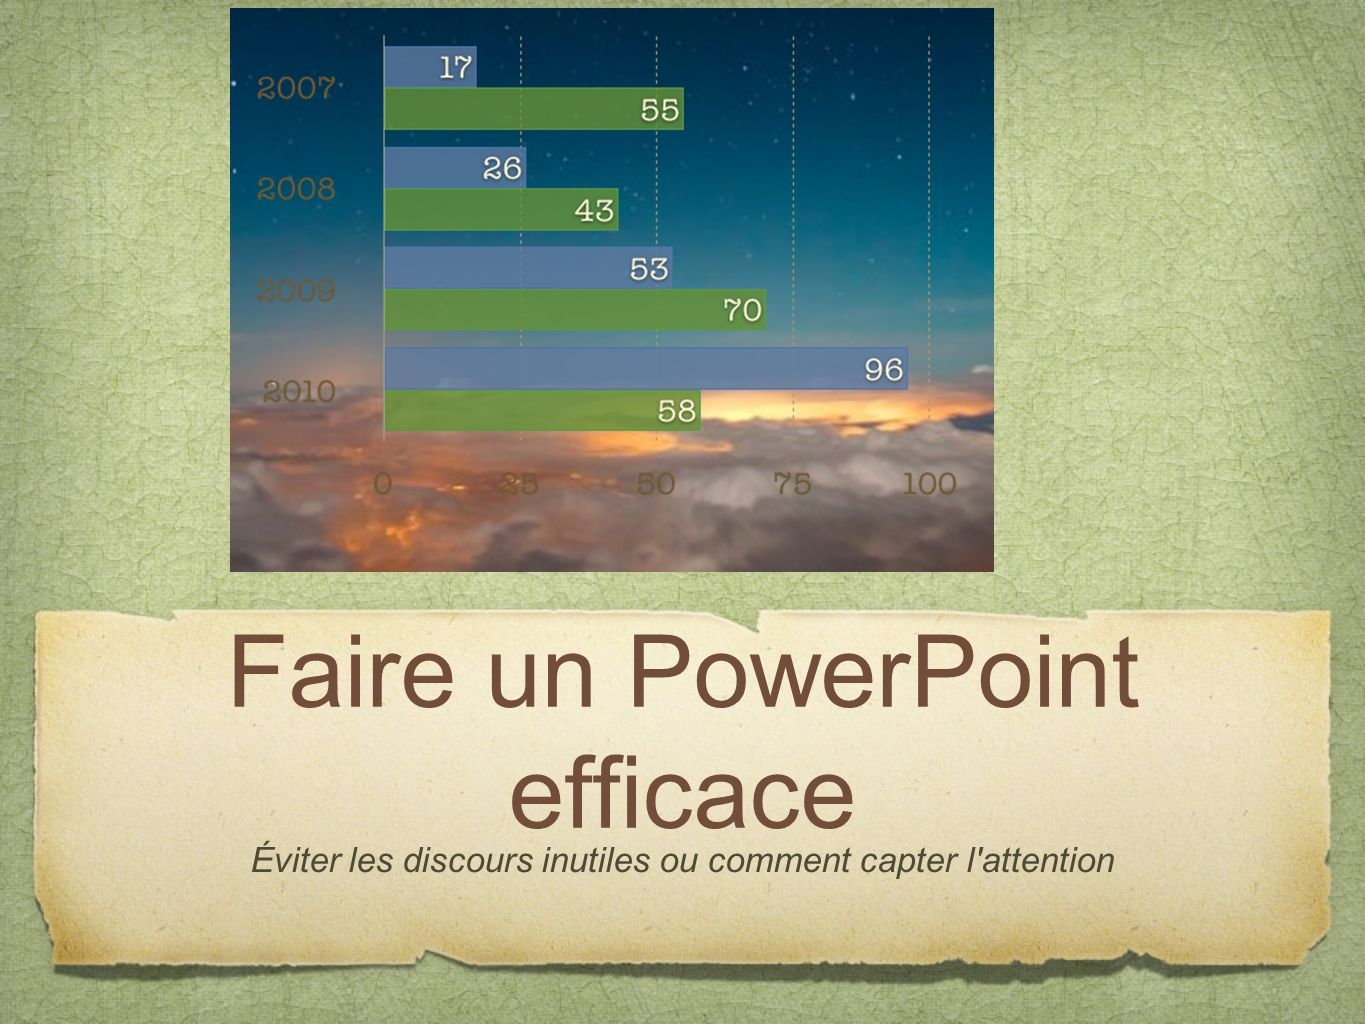 Faire un PowerPoint efficace